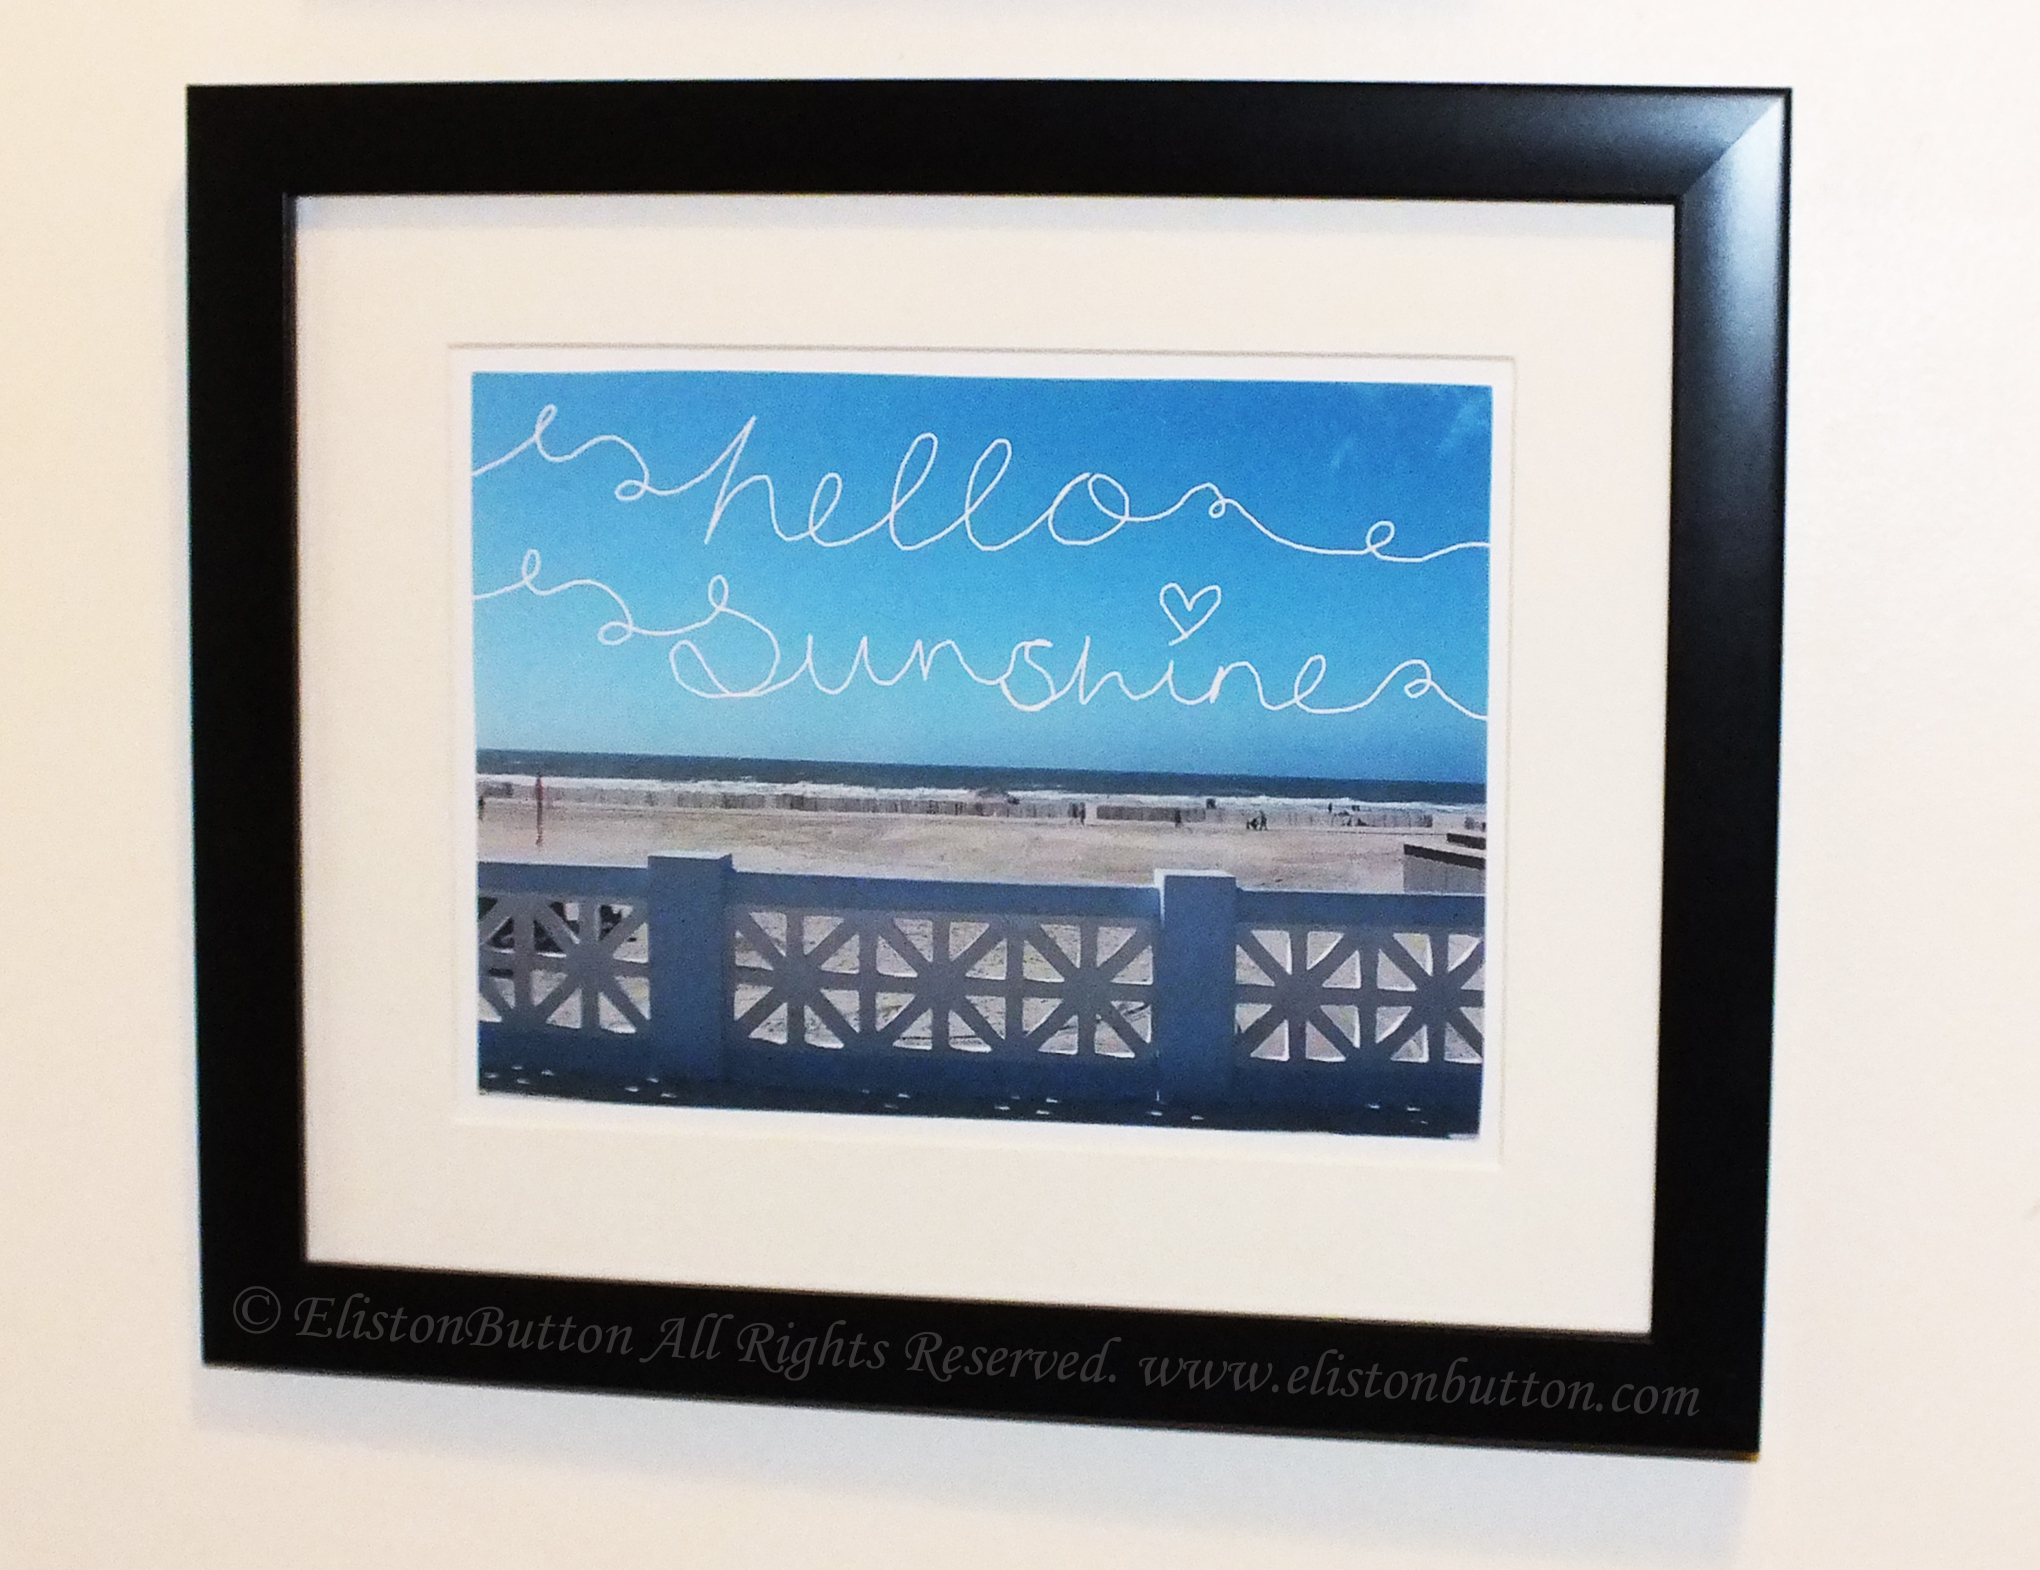 Hello Sunshine Framed Photograph with Hand Lettering - Creating My Own Wall Art at www.elistonbutton.com - Eliston Button - That Crafty Kid – Art, Design, Craft & Adventure.